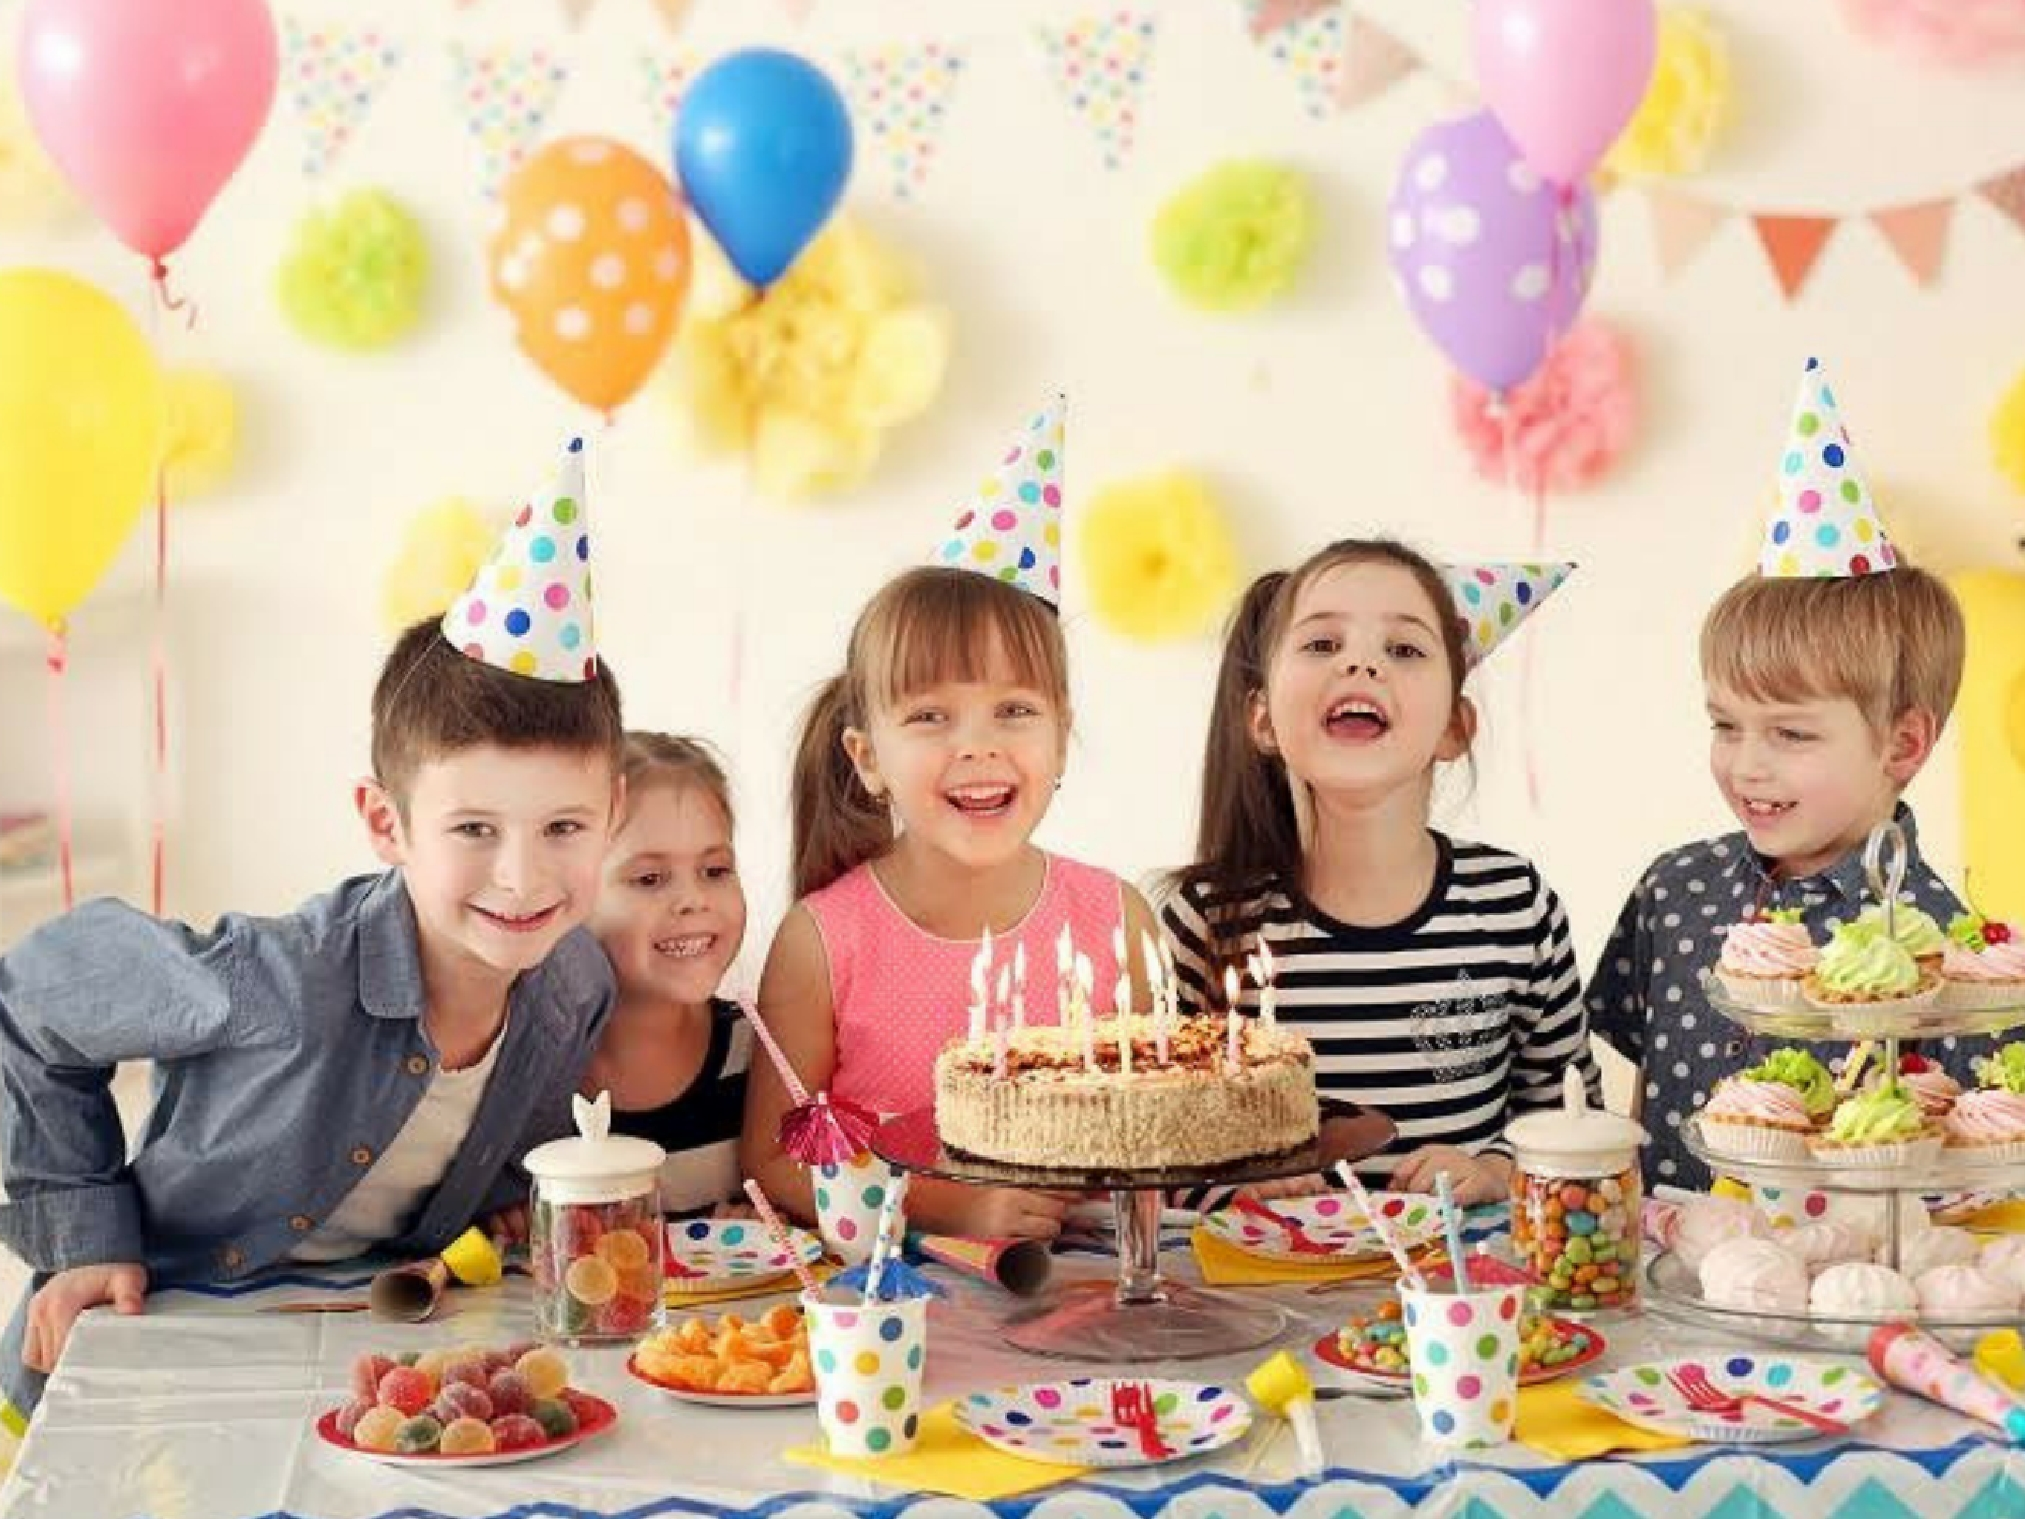 How to Throw a Memorable Birthday Party for Your Kid? - Mom With Five